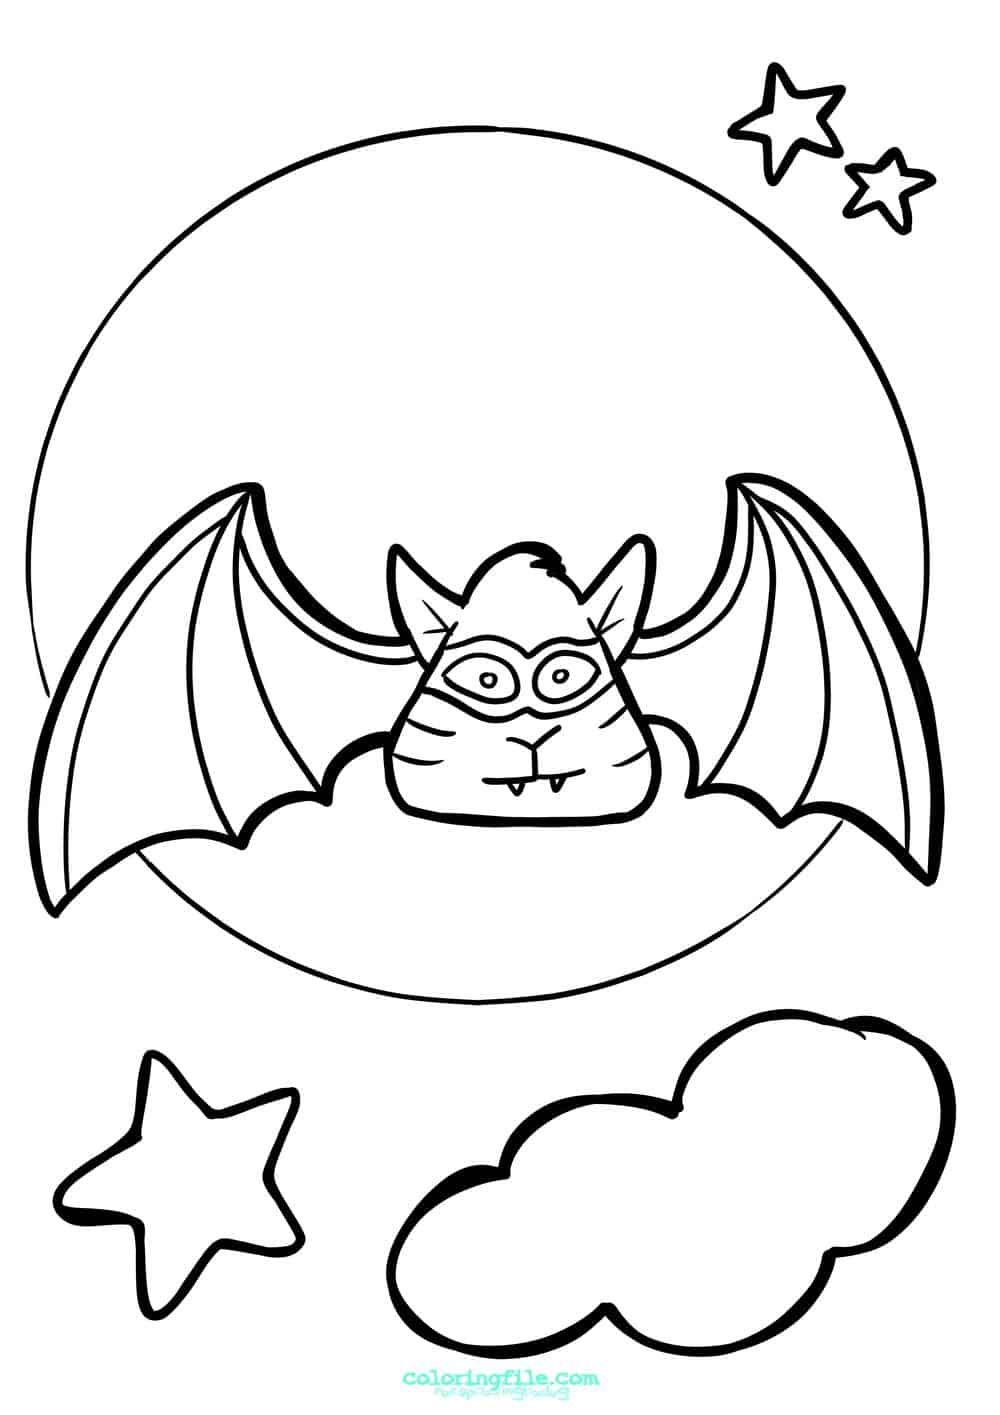 Halloween Super Bat Coloring Pages Bat Coloring Pages Halloween